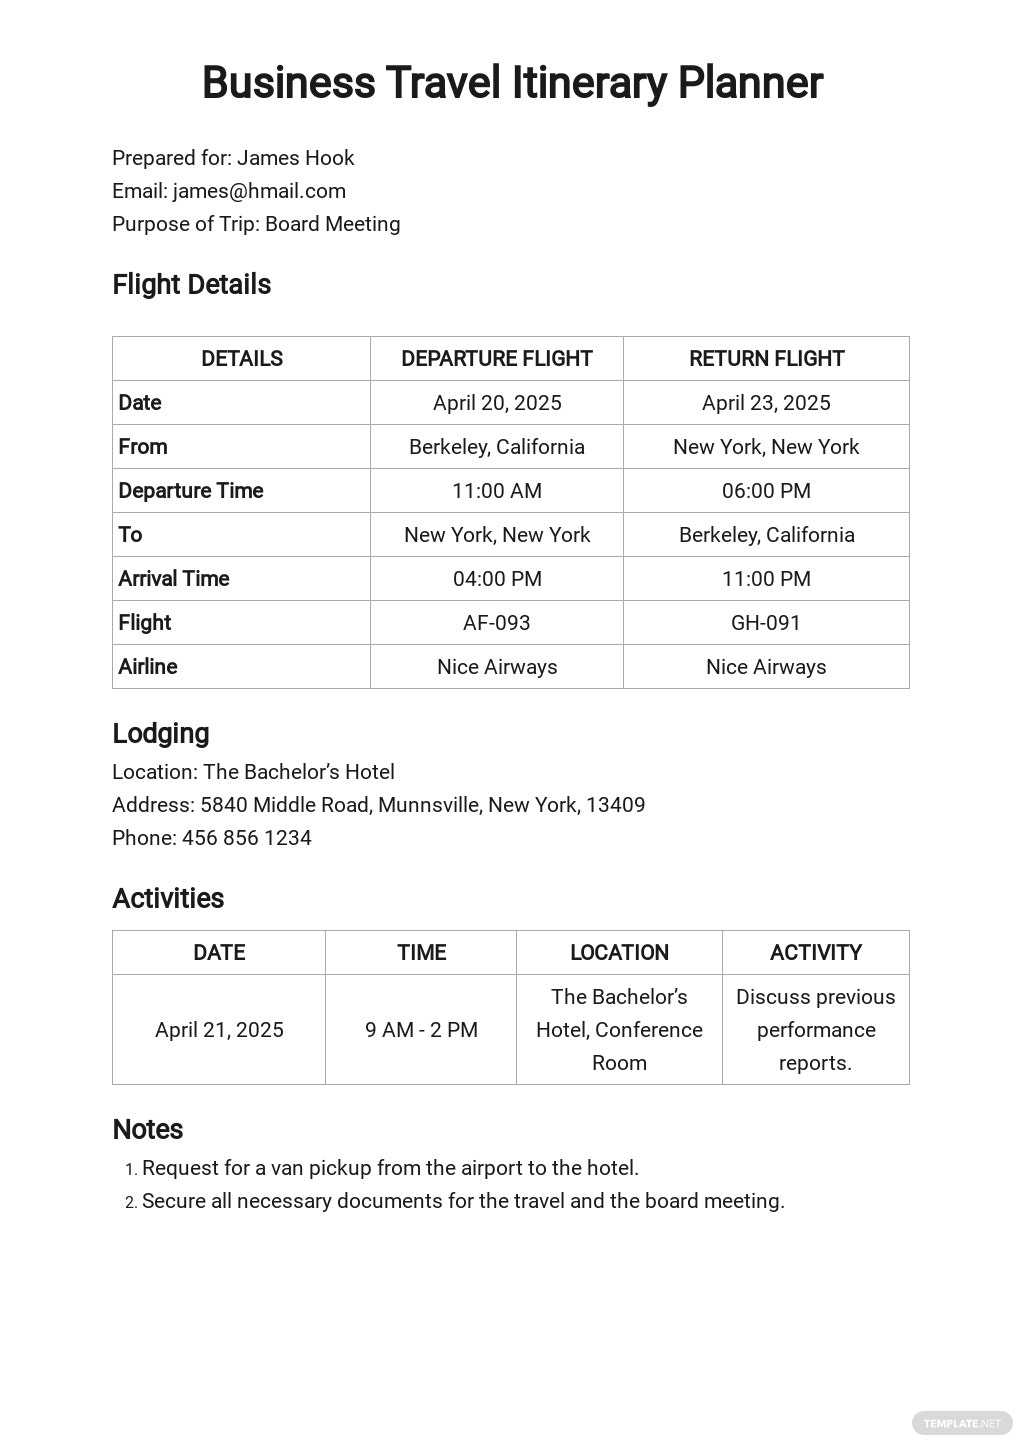 Business Travel Itinerary Planner Template